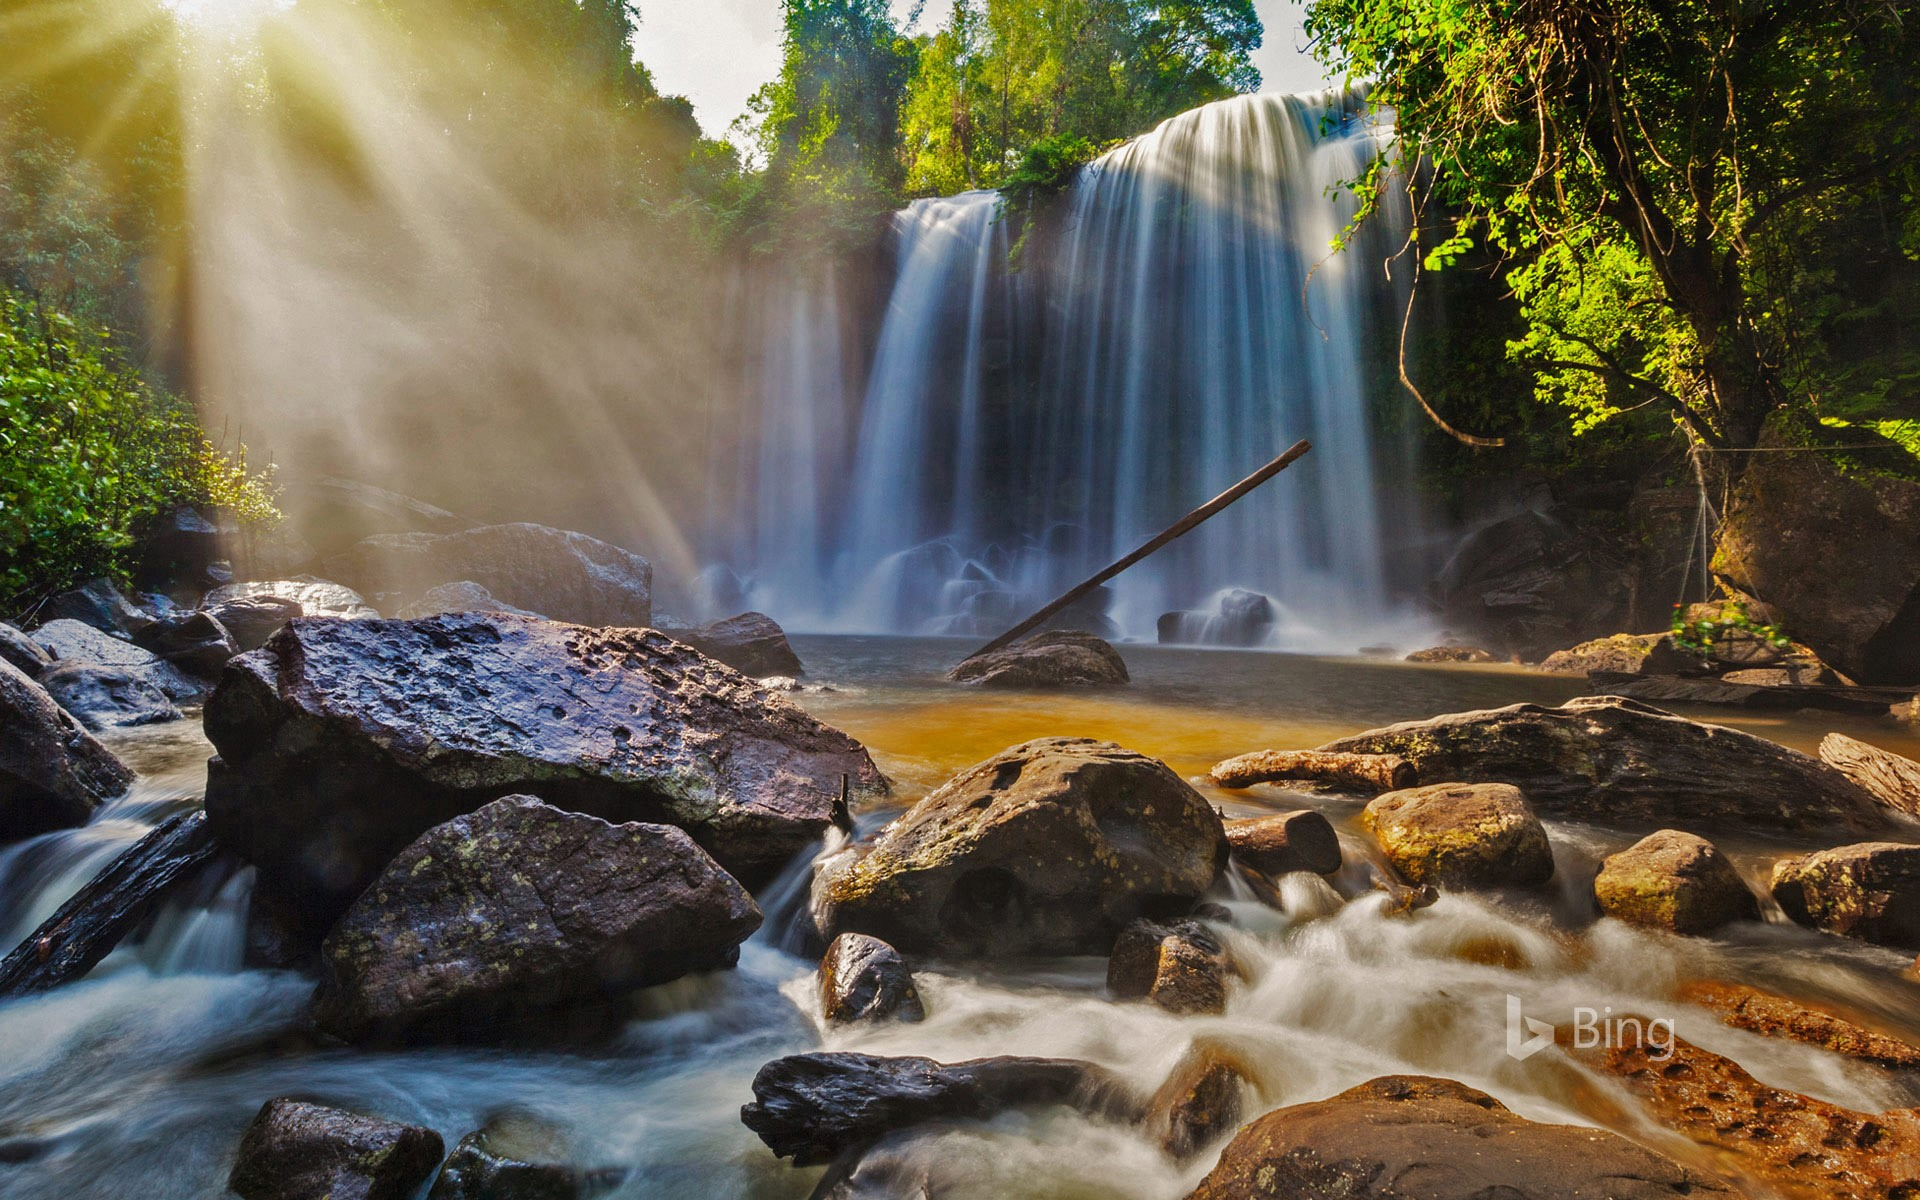 Waterfalls in Phnom Kulen National Park, Cambodia